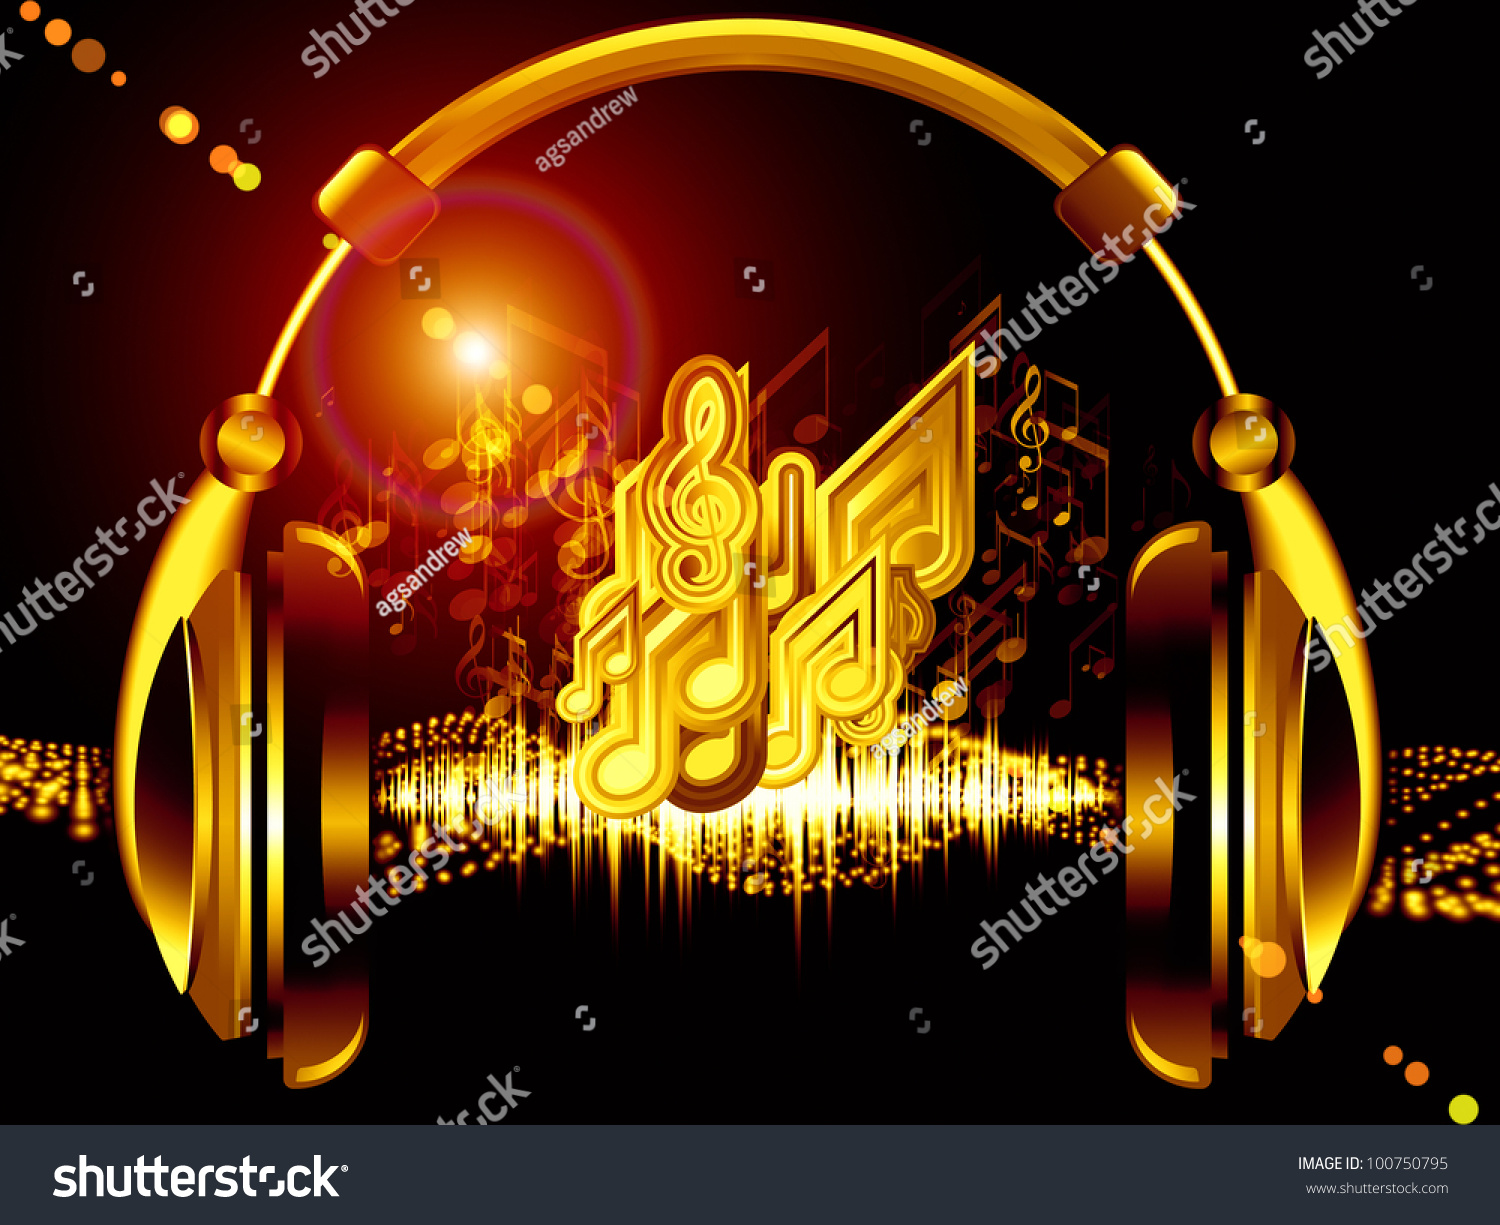 Headphones Music Notes: Composition Of Headphones, Musical Notes, Abstract Design